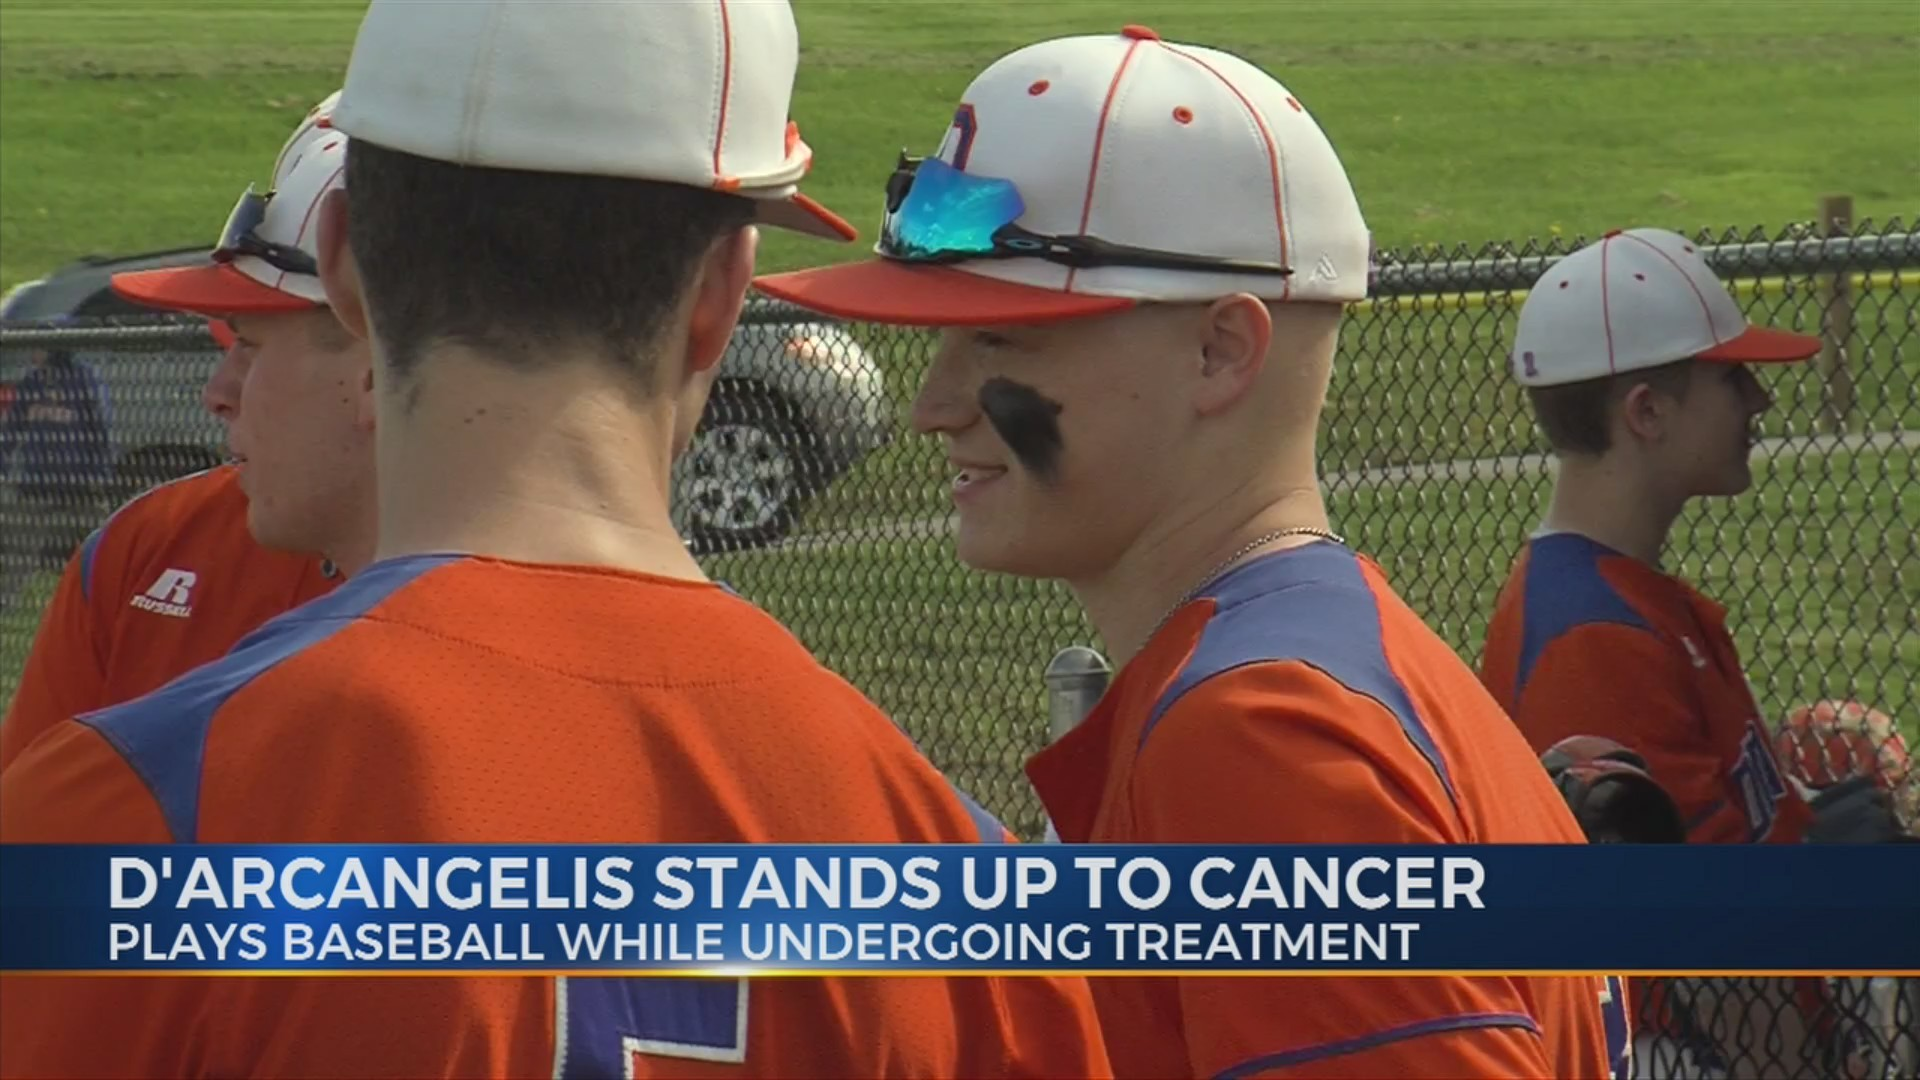 Oneida's D'Arcangelis stands up to cancer